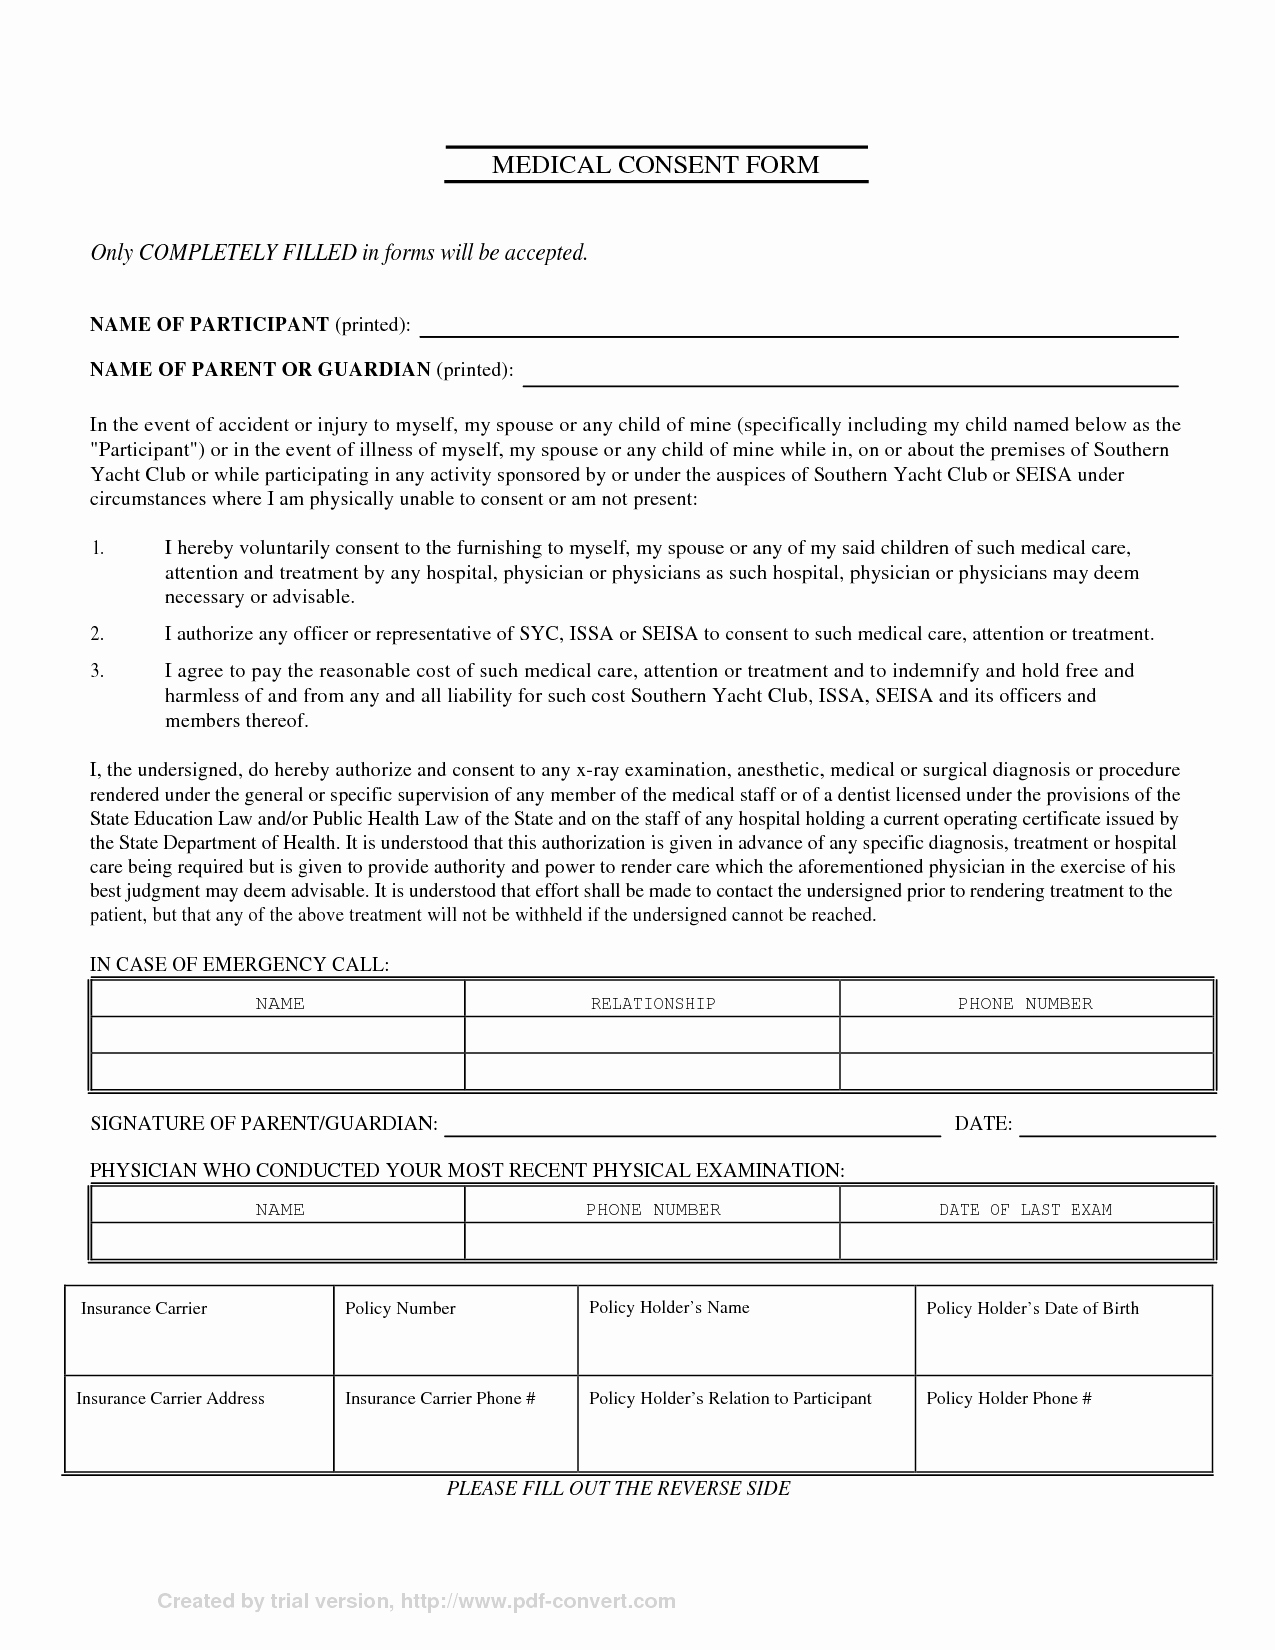 Medical Consent form Template Luxury Parental Medical Consent form Template Free Printable